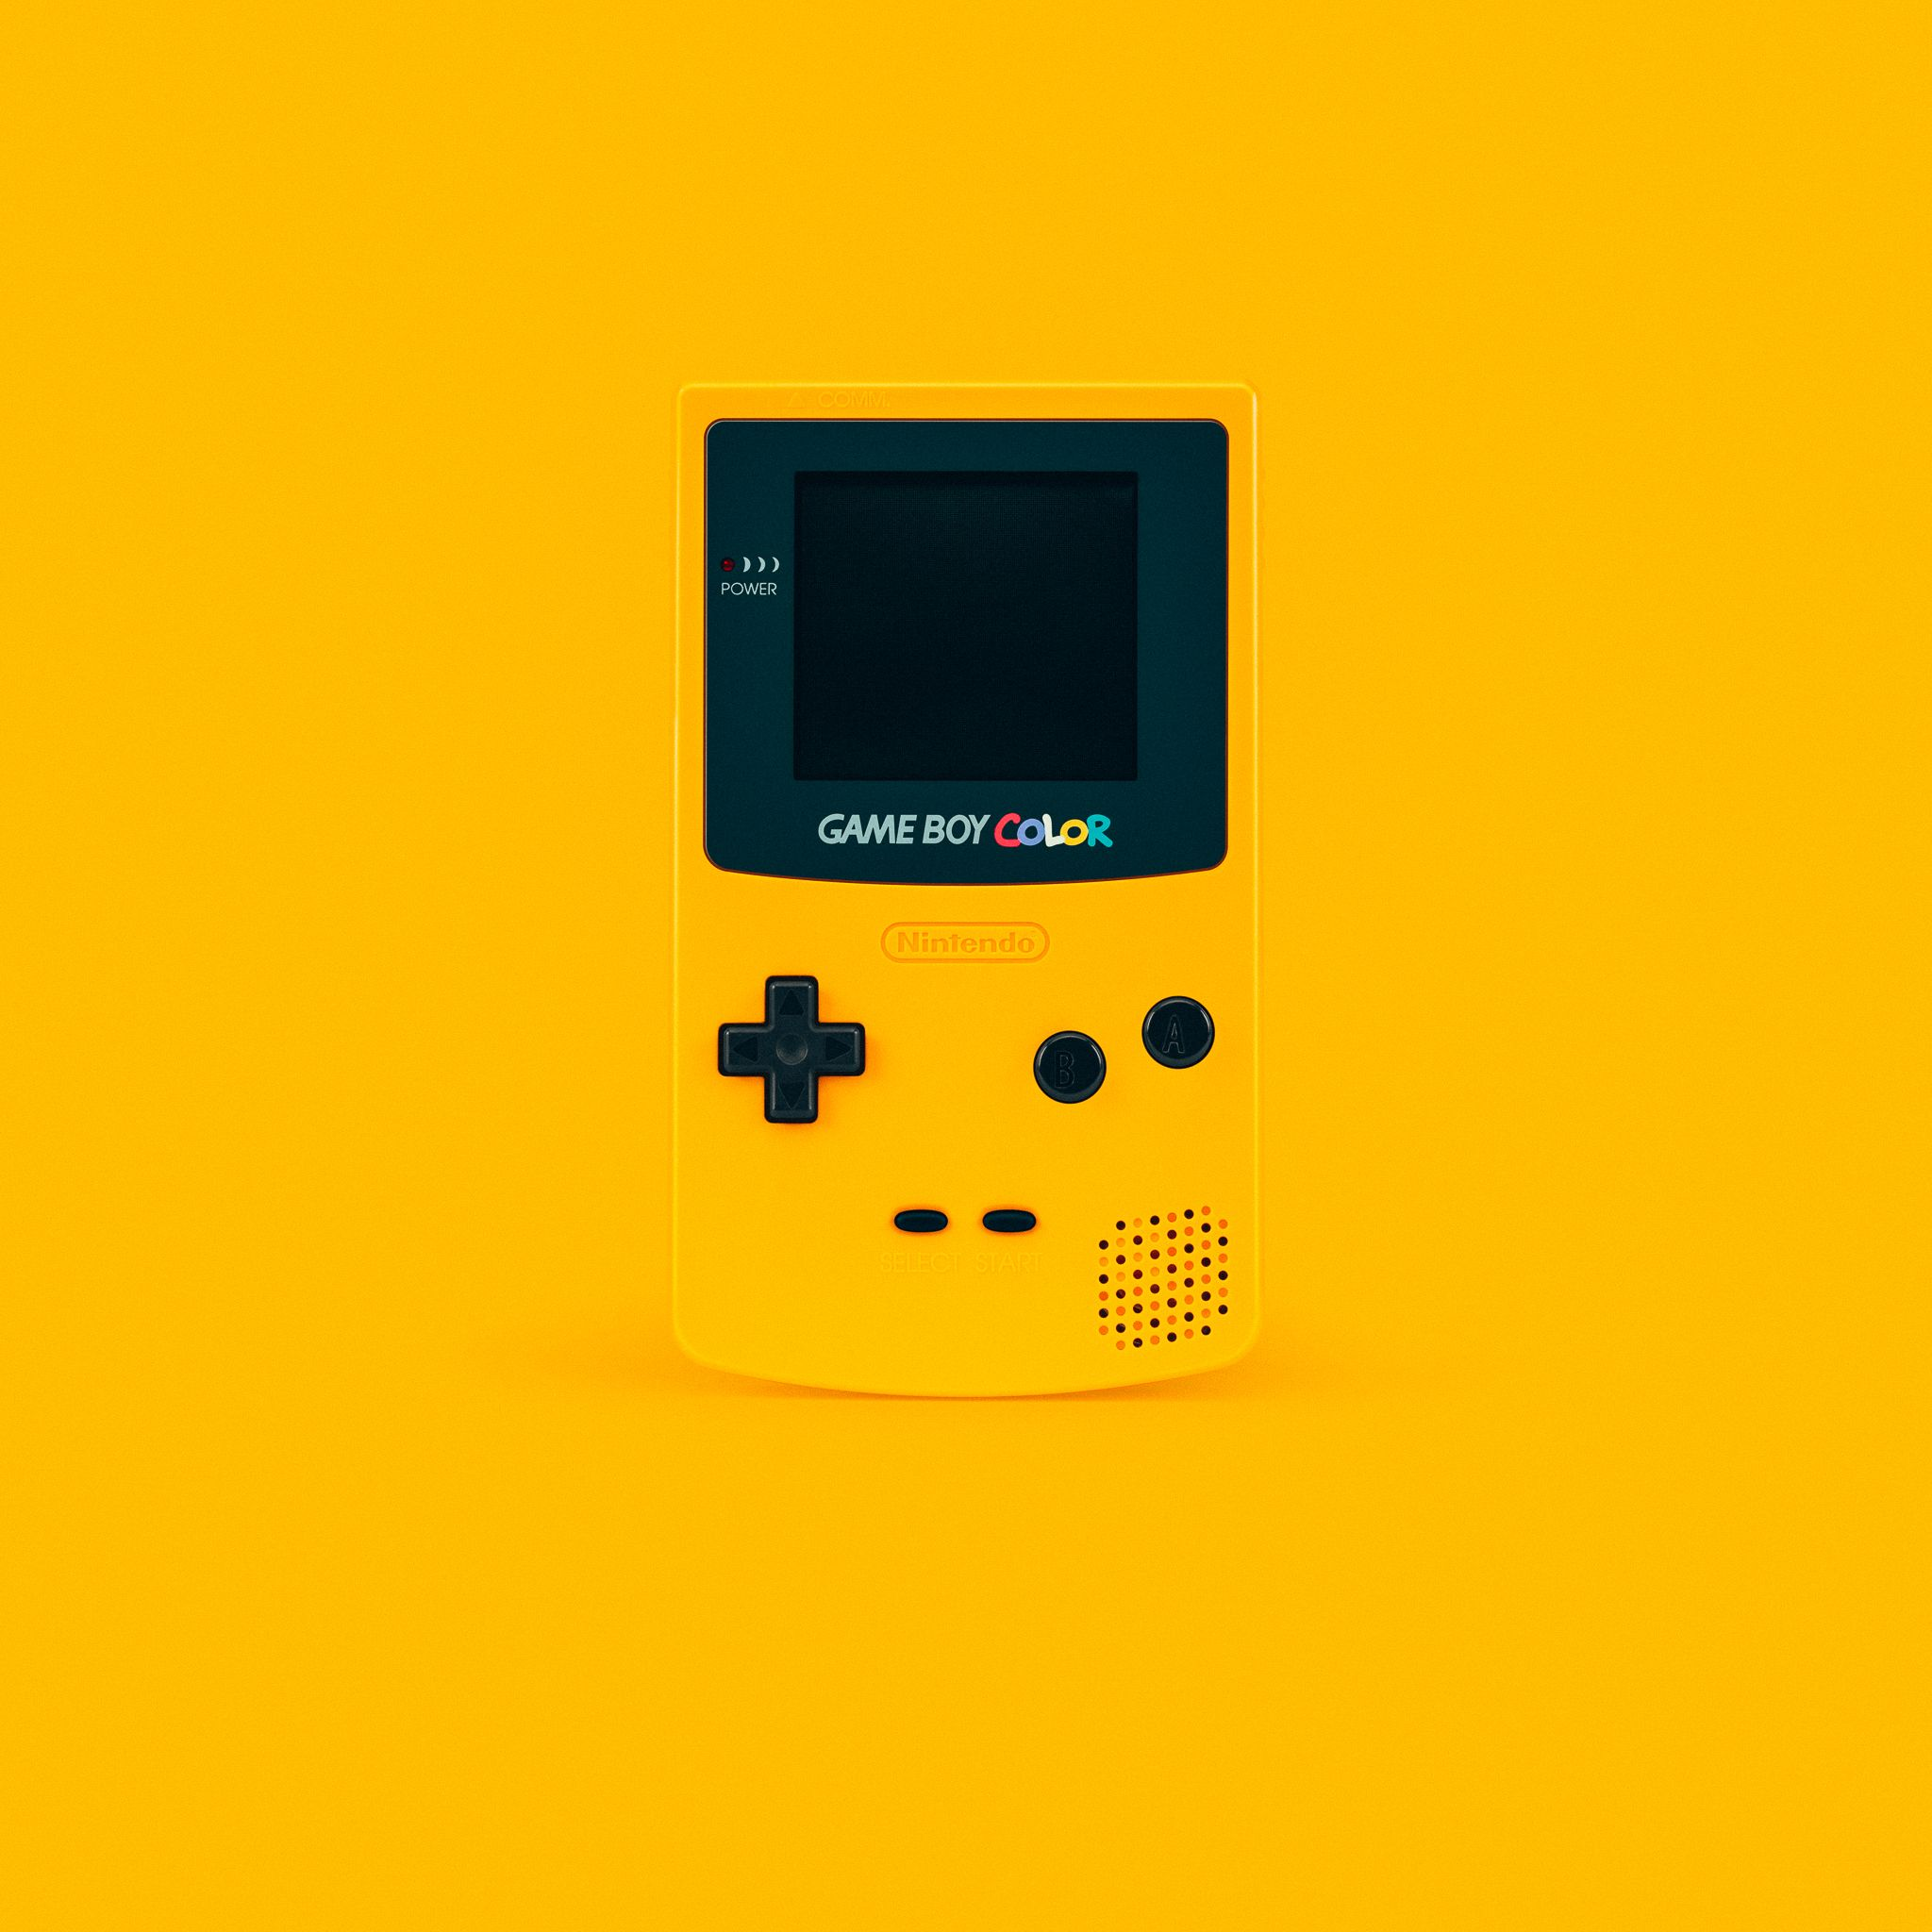 Pin By Cam On Wall Pictures Gameboy Retro Pictures Stock Images Free